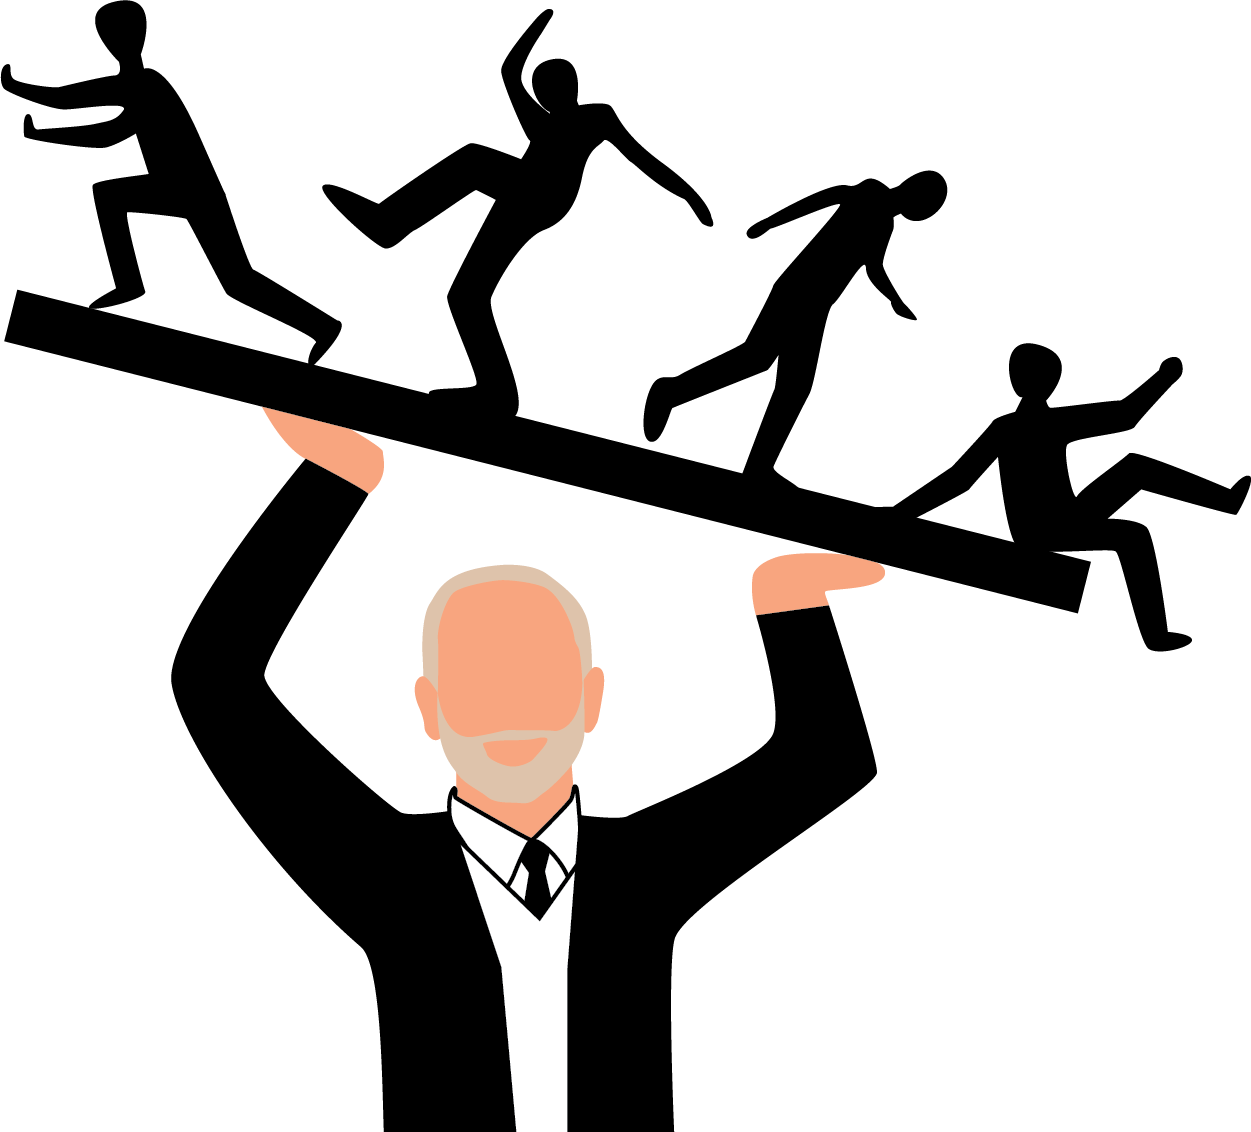 An illustration of President Morton Shapiro holding professors on a tilted board above his head